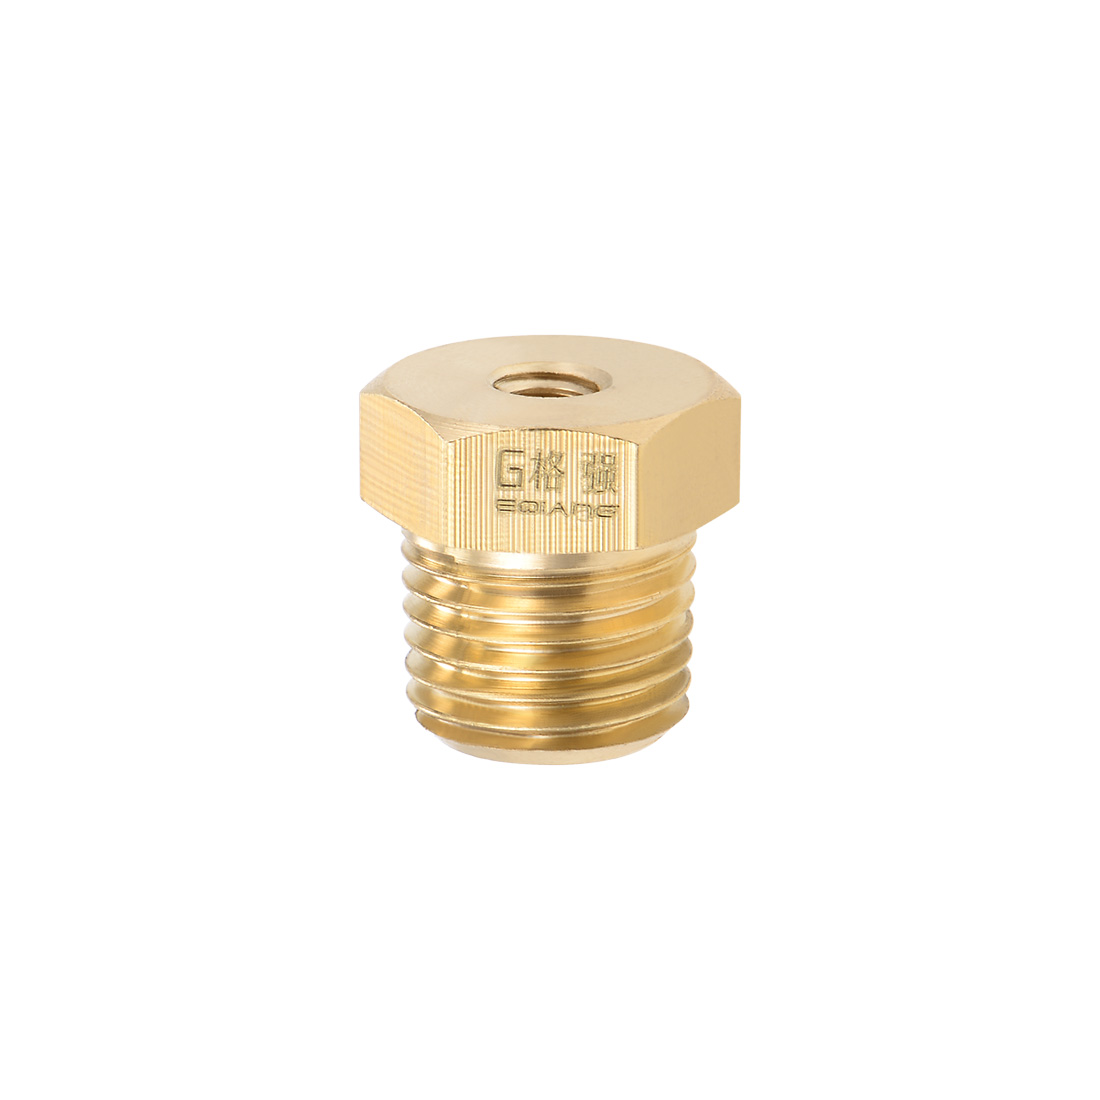 Brass Pipe Hose Fitting 1/4 Male to 3/16 Female Thread Tube Adapter Nozzle